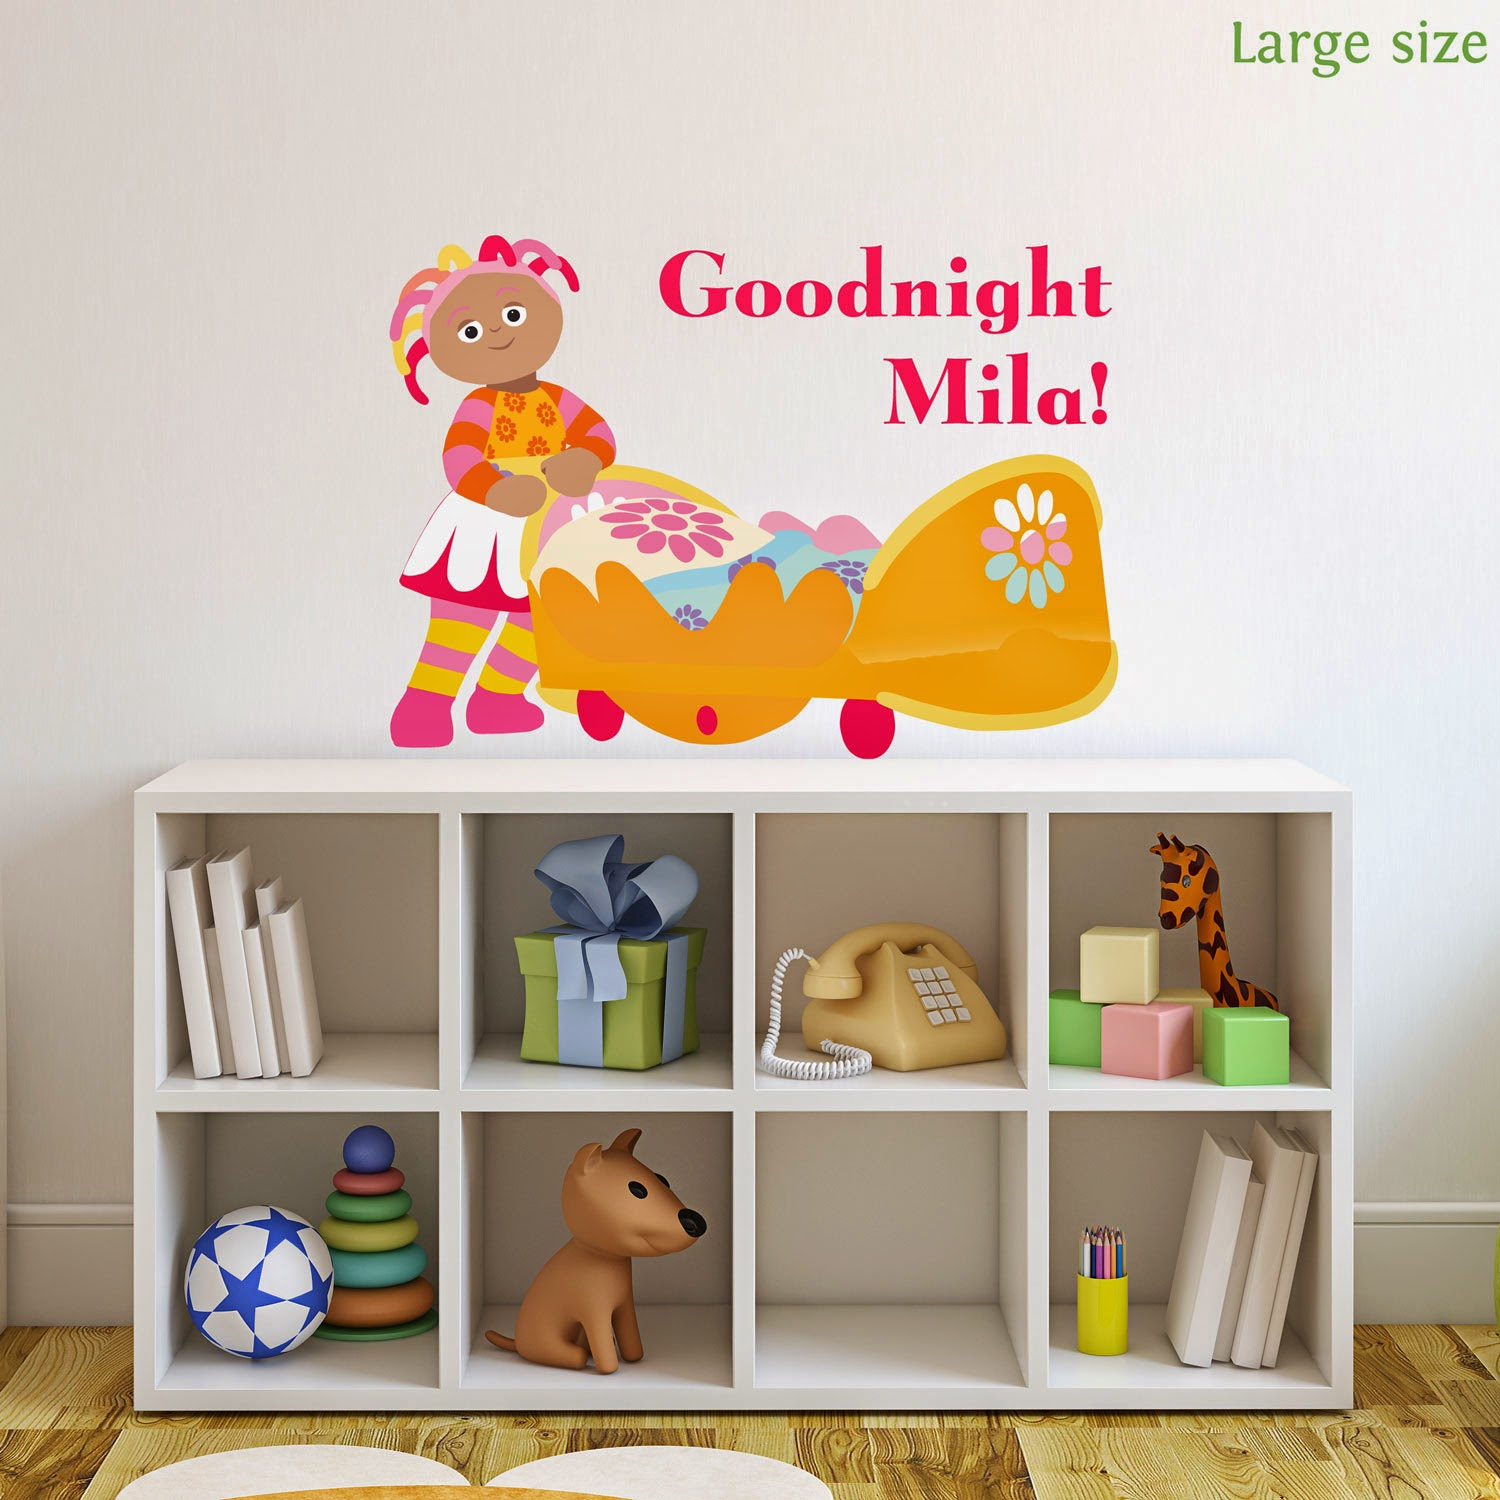 Charming Stickerscapeu0027s Wall Stickers Are Designed To Give The Appearance Of Painted  Wall Murals Without The Need For Any Artistic Skills, Which Is Exactly What  We ... Part 13